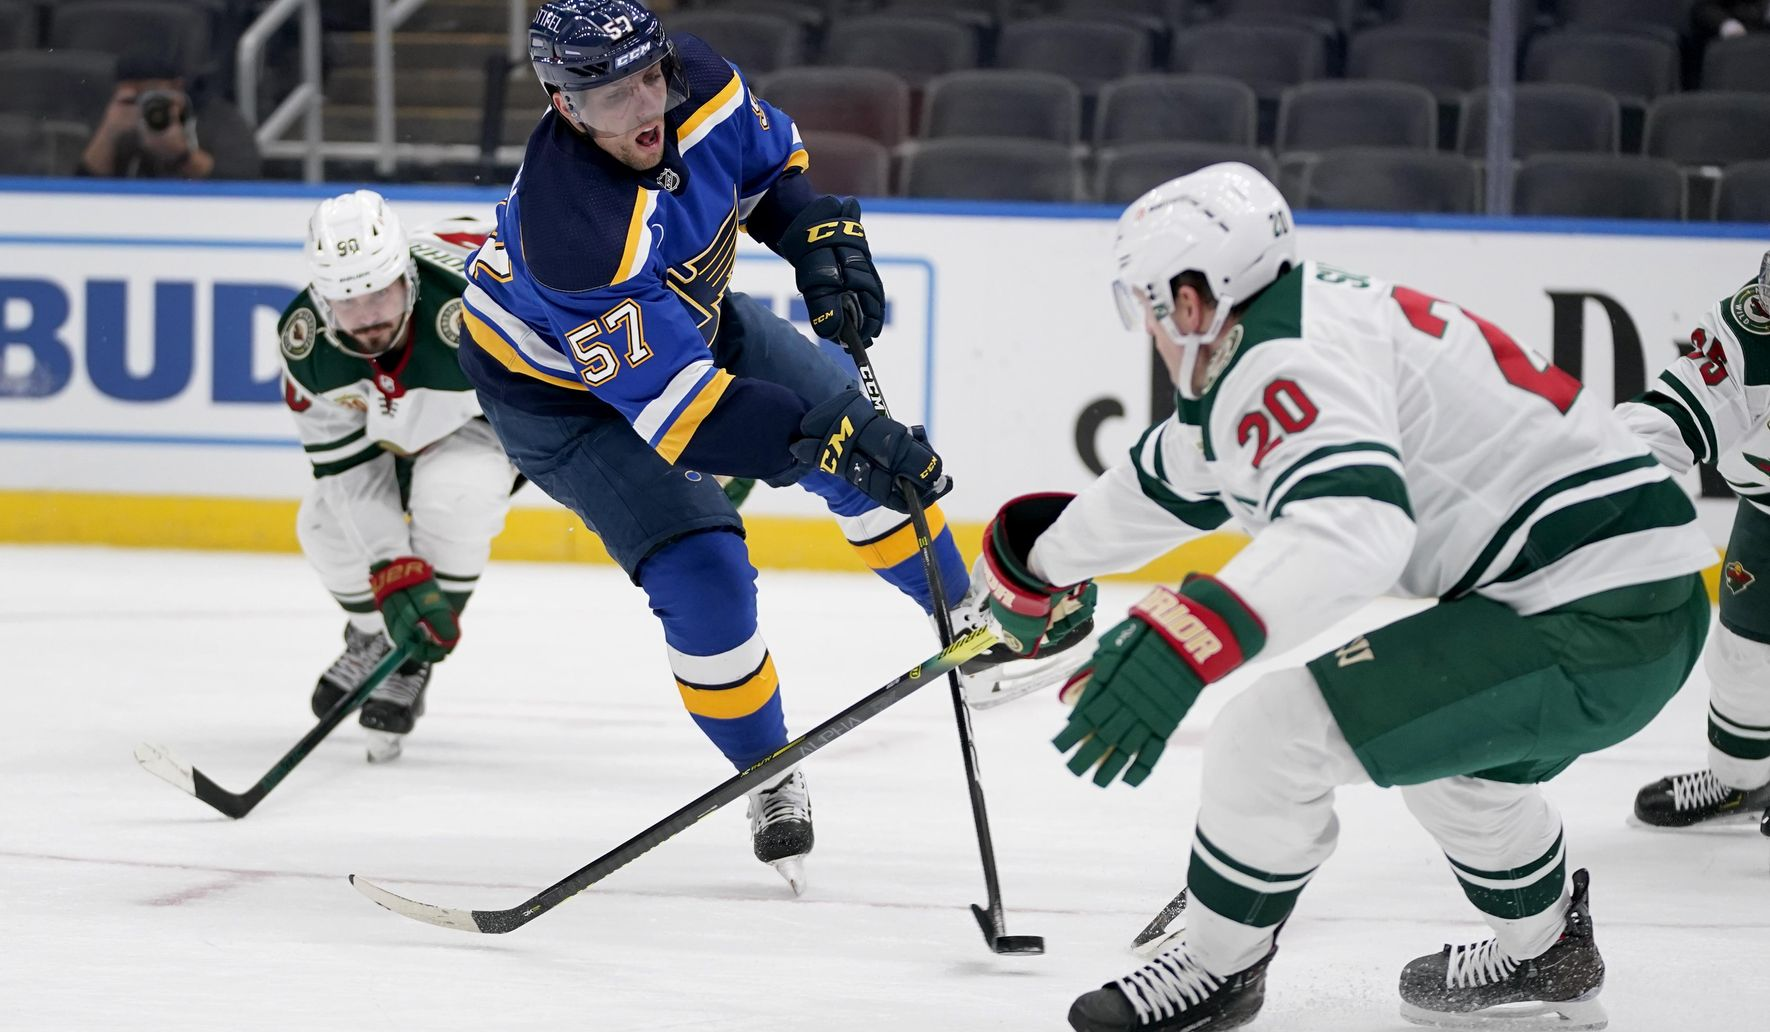 O'Reilly has 3 goals and an assist, Blues beat Wild 9-1